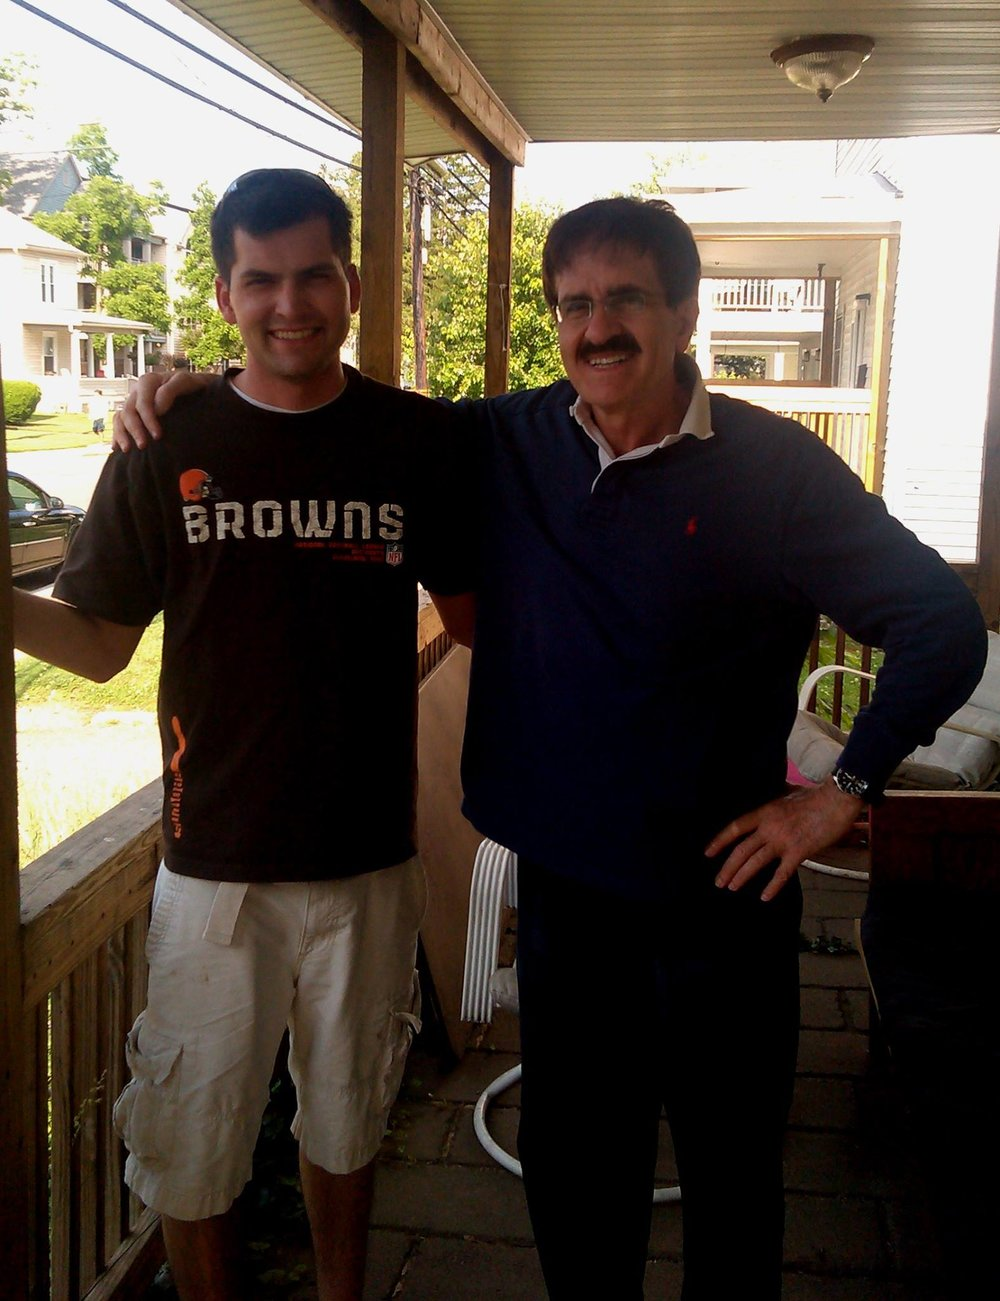 My Loving Father - I love you so much Dad :)